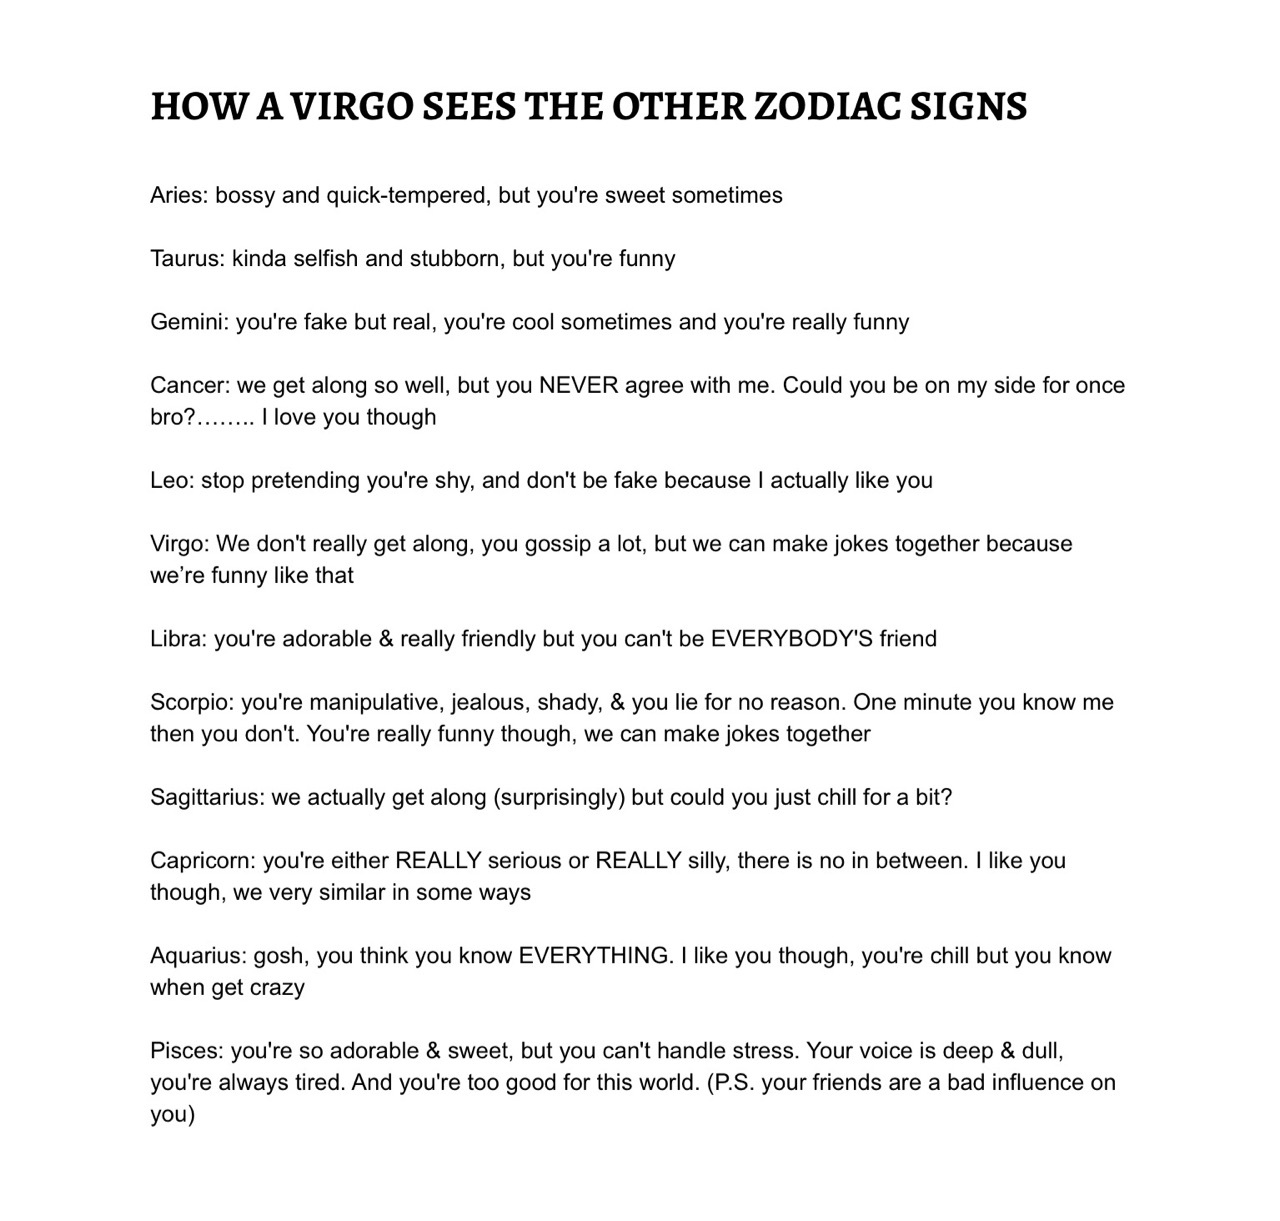 How a Virgo sees the other zodiac signs - image #4334483 by